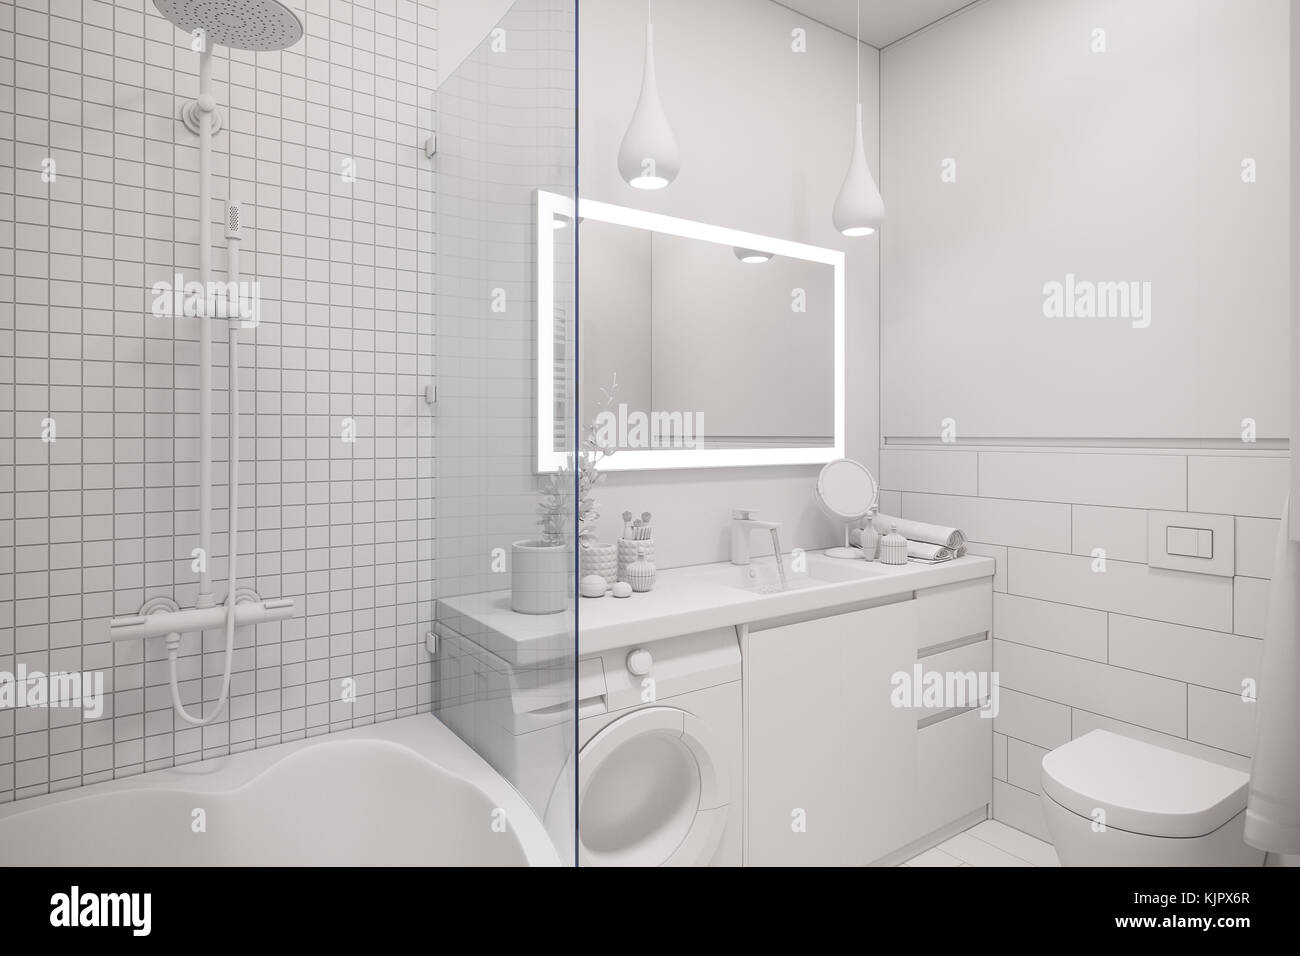 3d Illustration Of An Interior Design A White Minimalist Bathroom Modern Scandinavian Style Without Textures And Materials